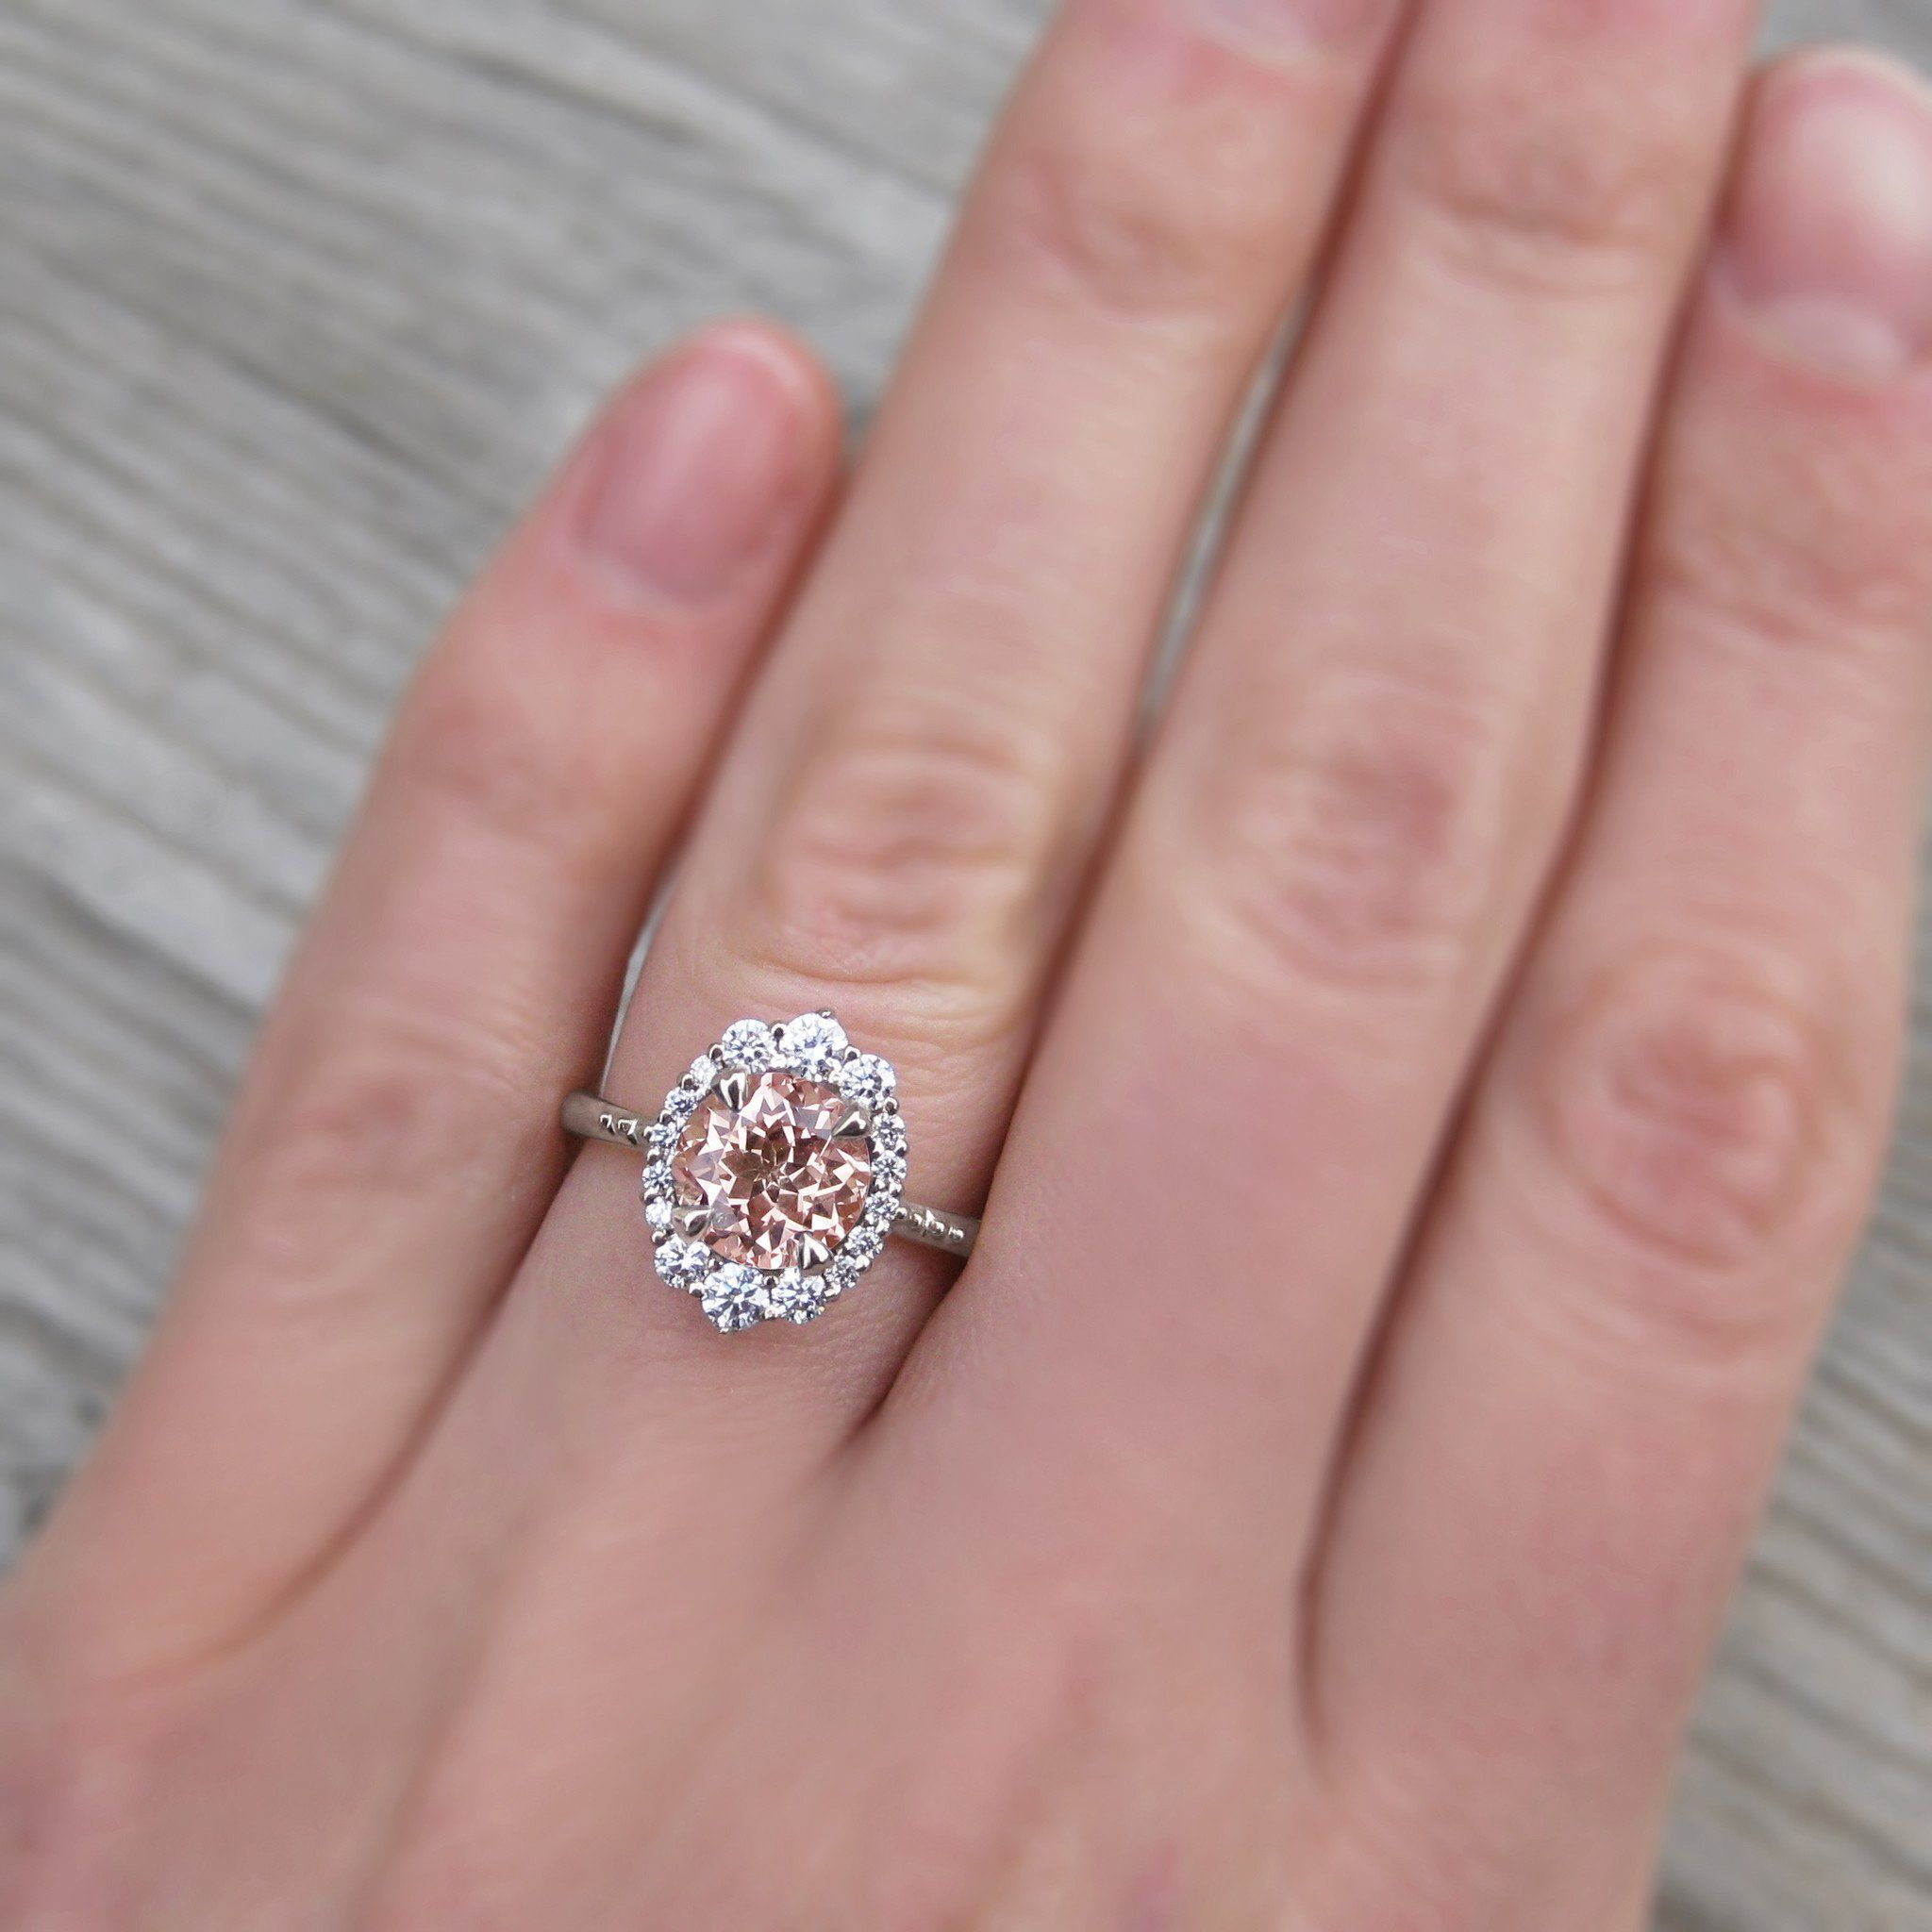 EMERSON・ Peach Sapphire, Diamond Halo (2.15ct) | "|2048|2048|?|False|8c2d569487df7c586017b637adf648df|False|UNLIKELY|0.3004649579524994